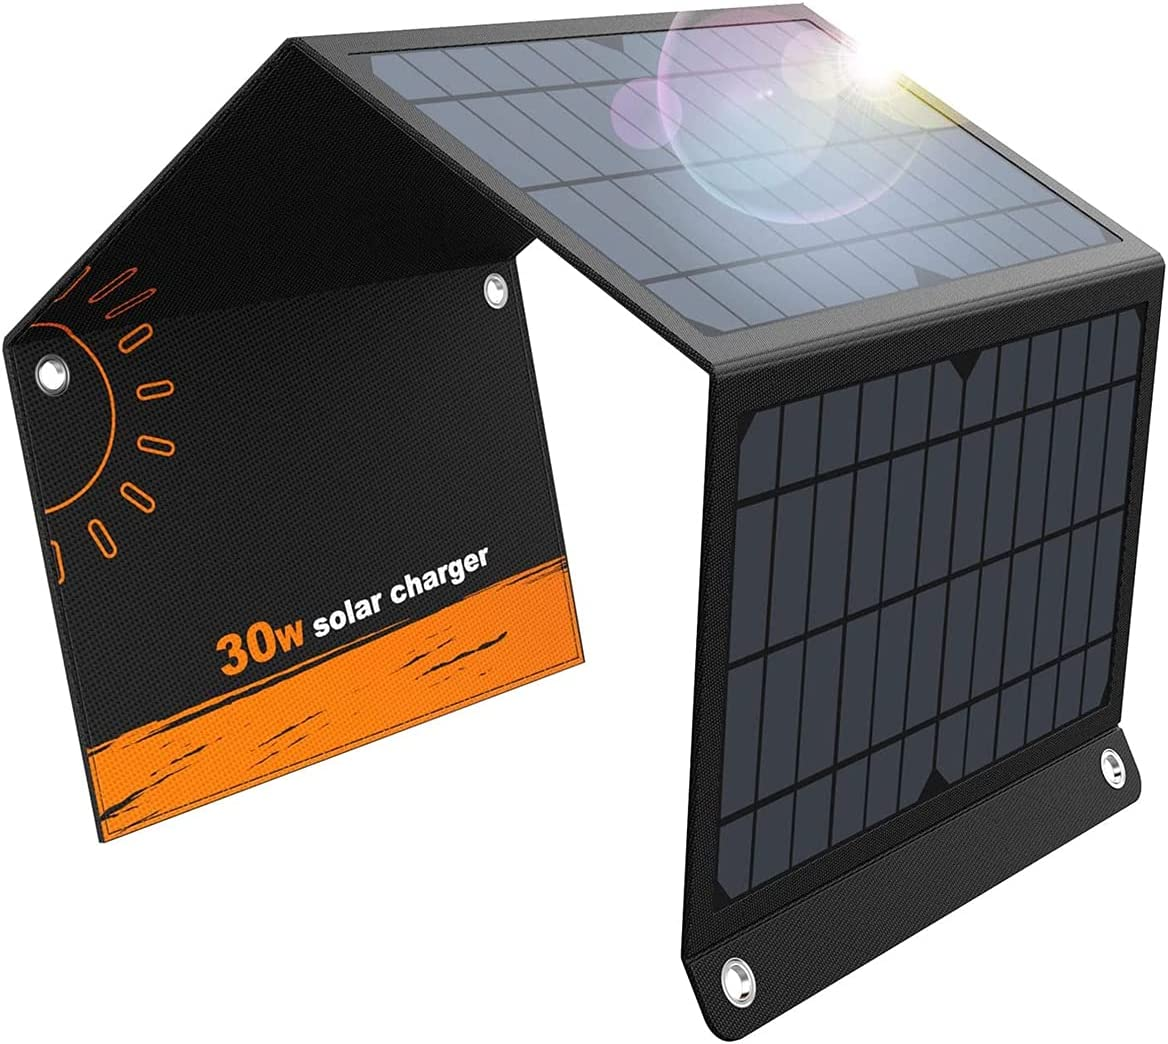 Solar Charger 30W 2USB and 1DC Ports Solar Panels with 3 Foldable Panel Upgrade Has High Conversion(5V/5A Max) Rate Portable Solar Phone Charger Compatible with iPhone Samsung More USB and DC Devices